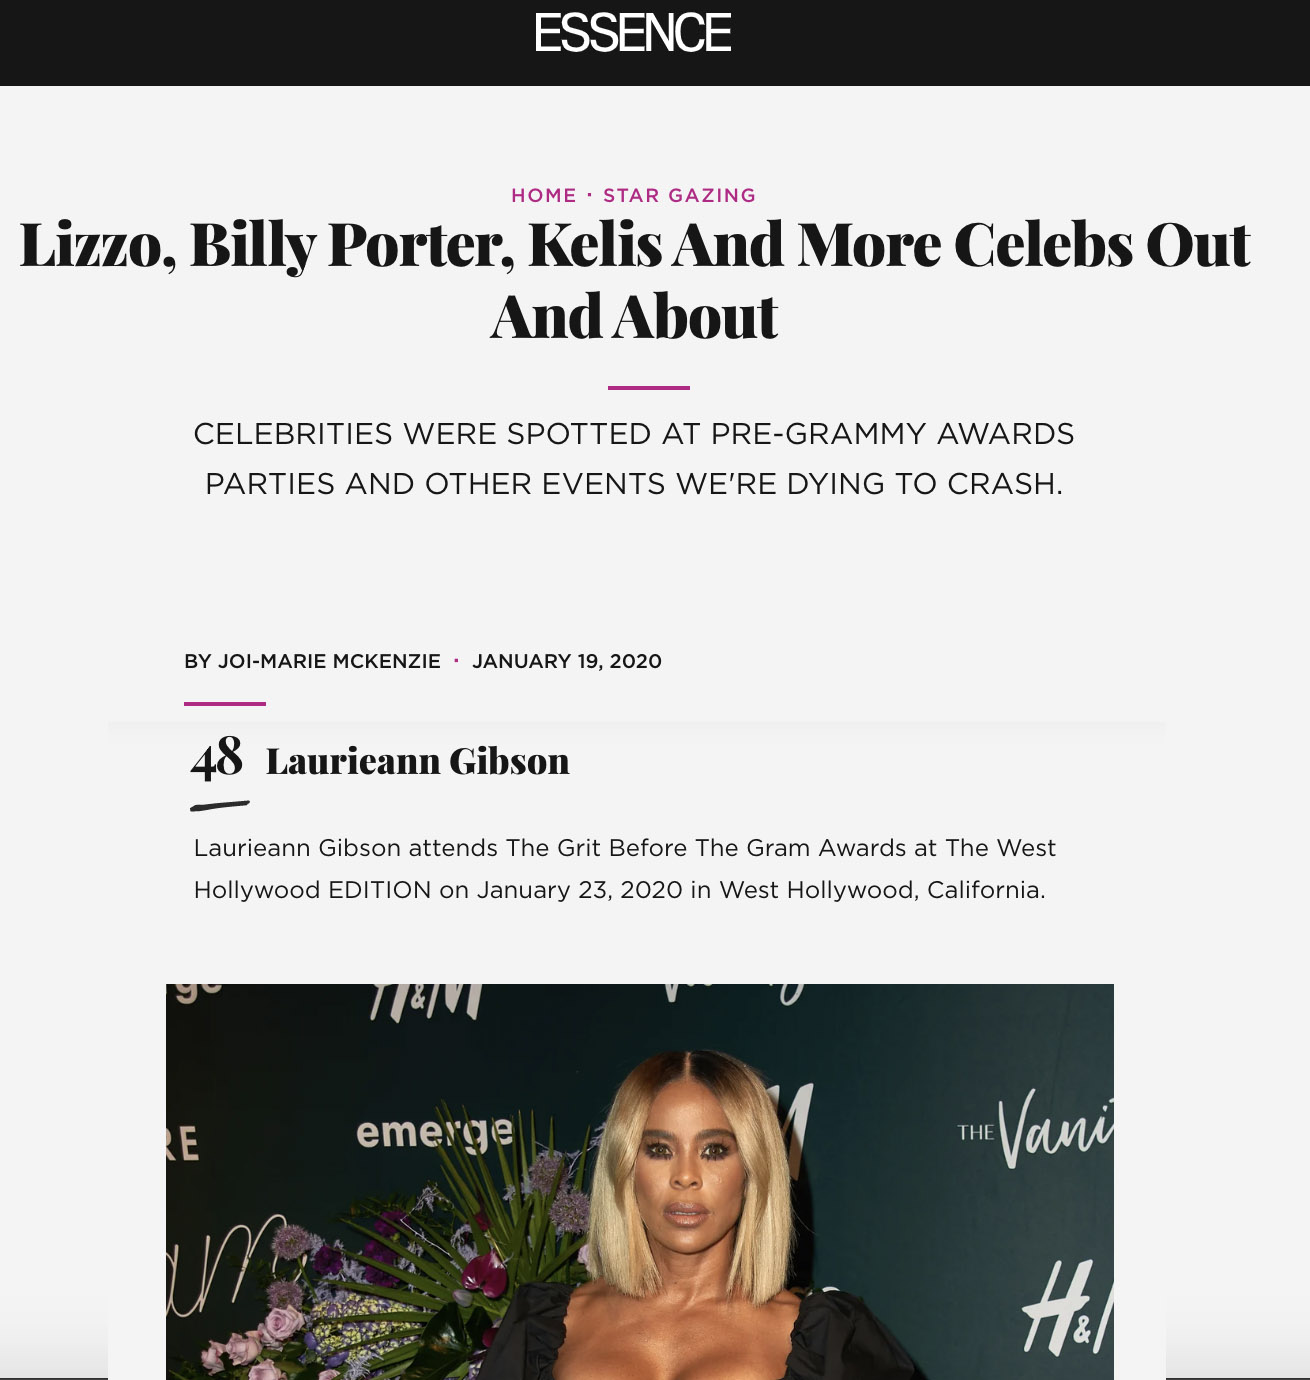 Lizzo, Billy Porter, Kelis And More Celebs Out And About